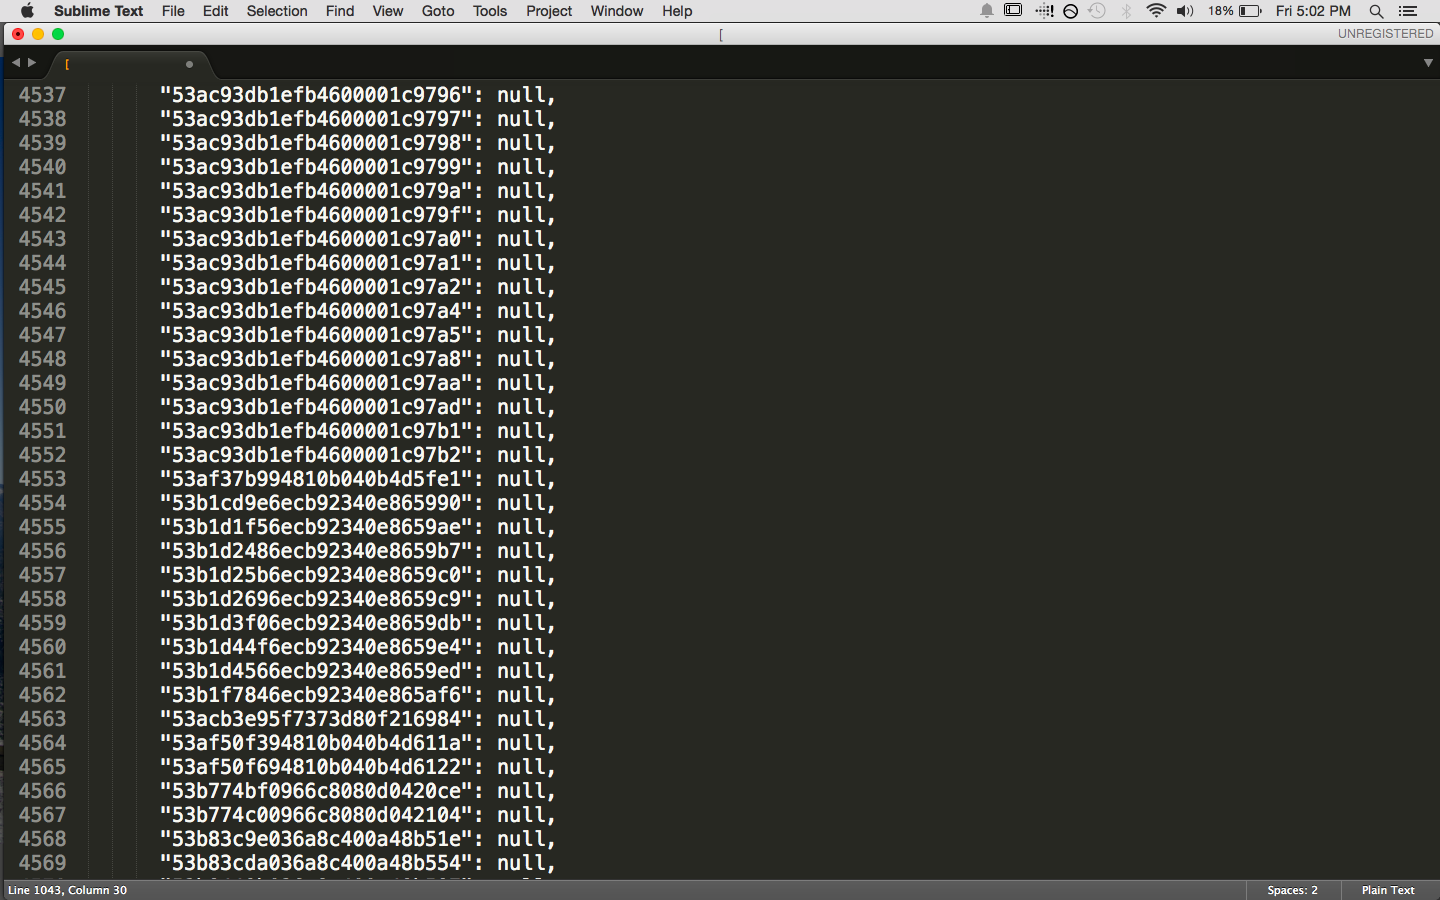 5000 lines of code in sublime text editor